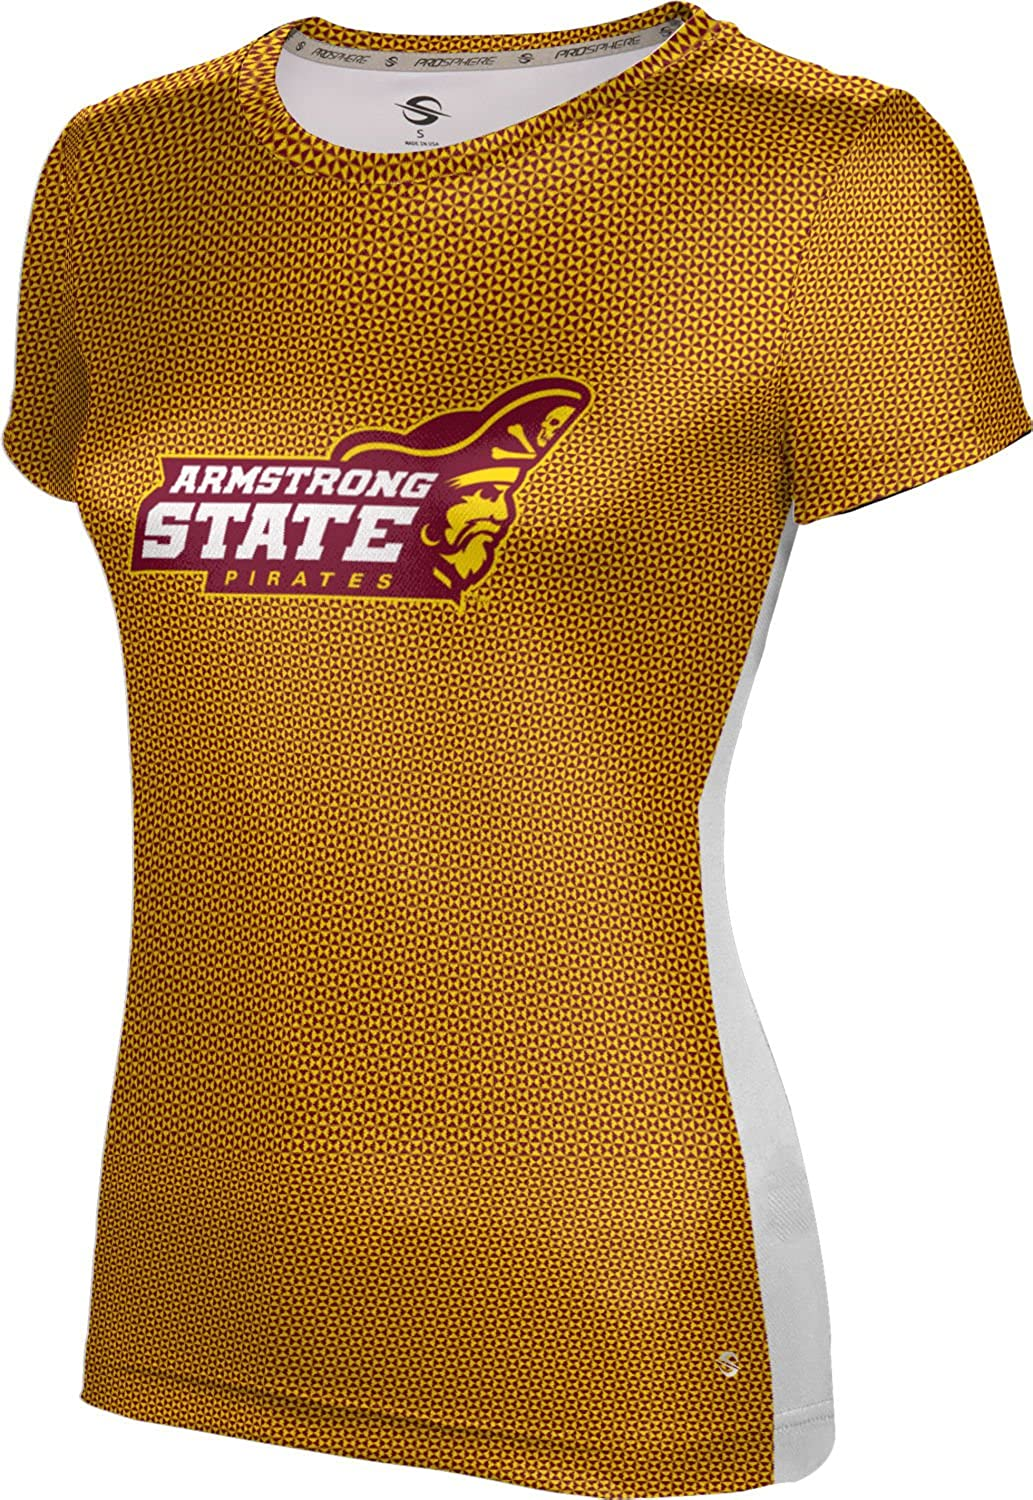 ProSphere Armstrong State University Girls Performance T-Shirt Embrace